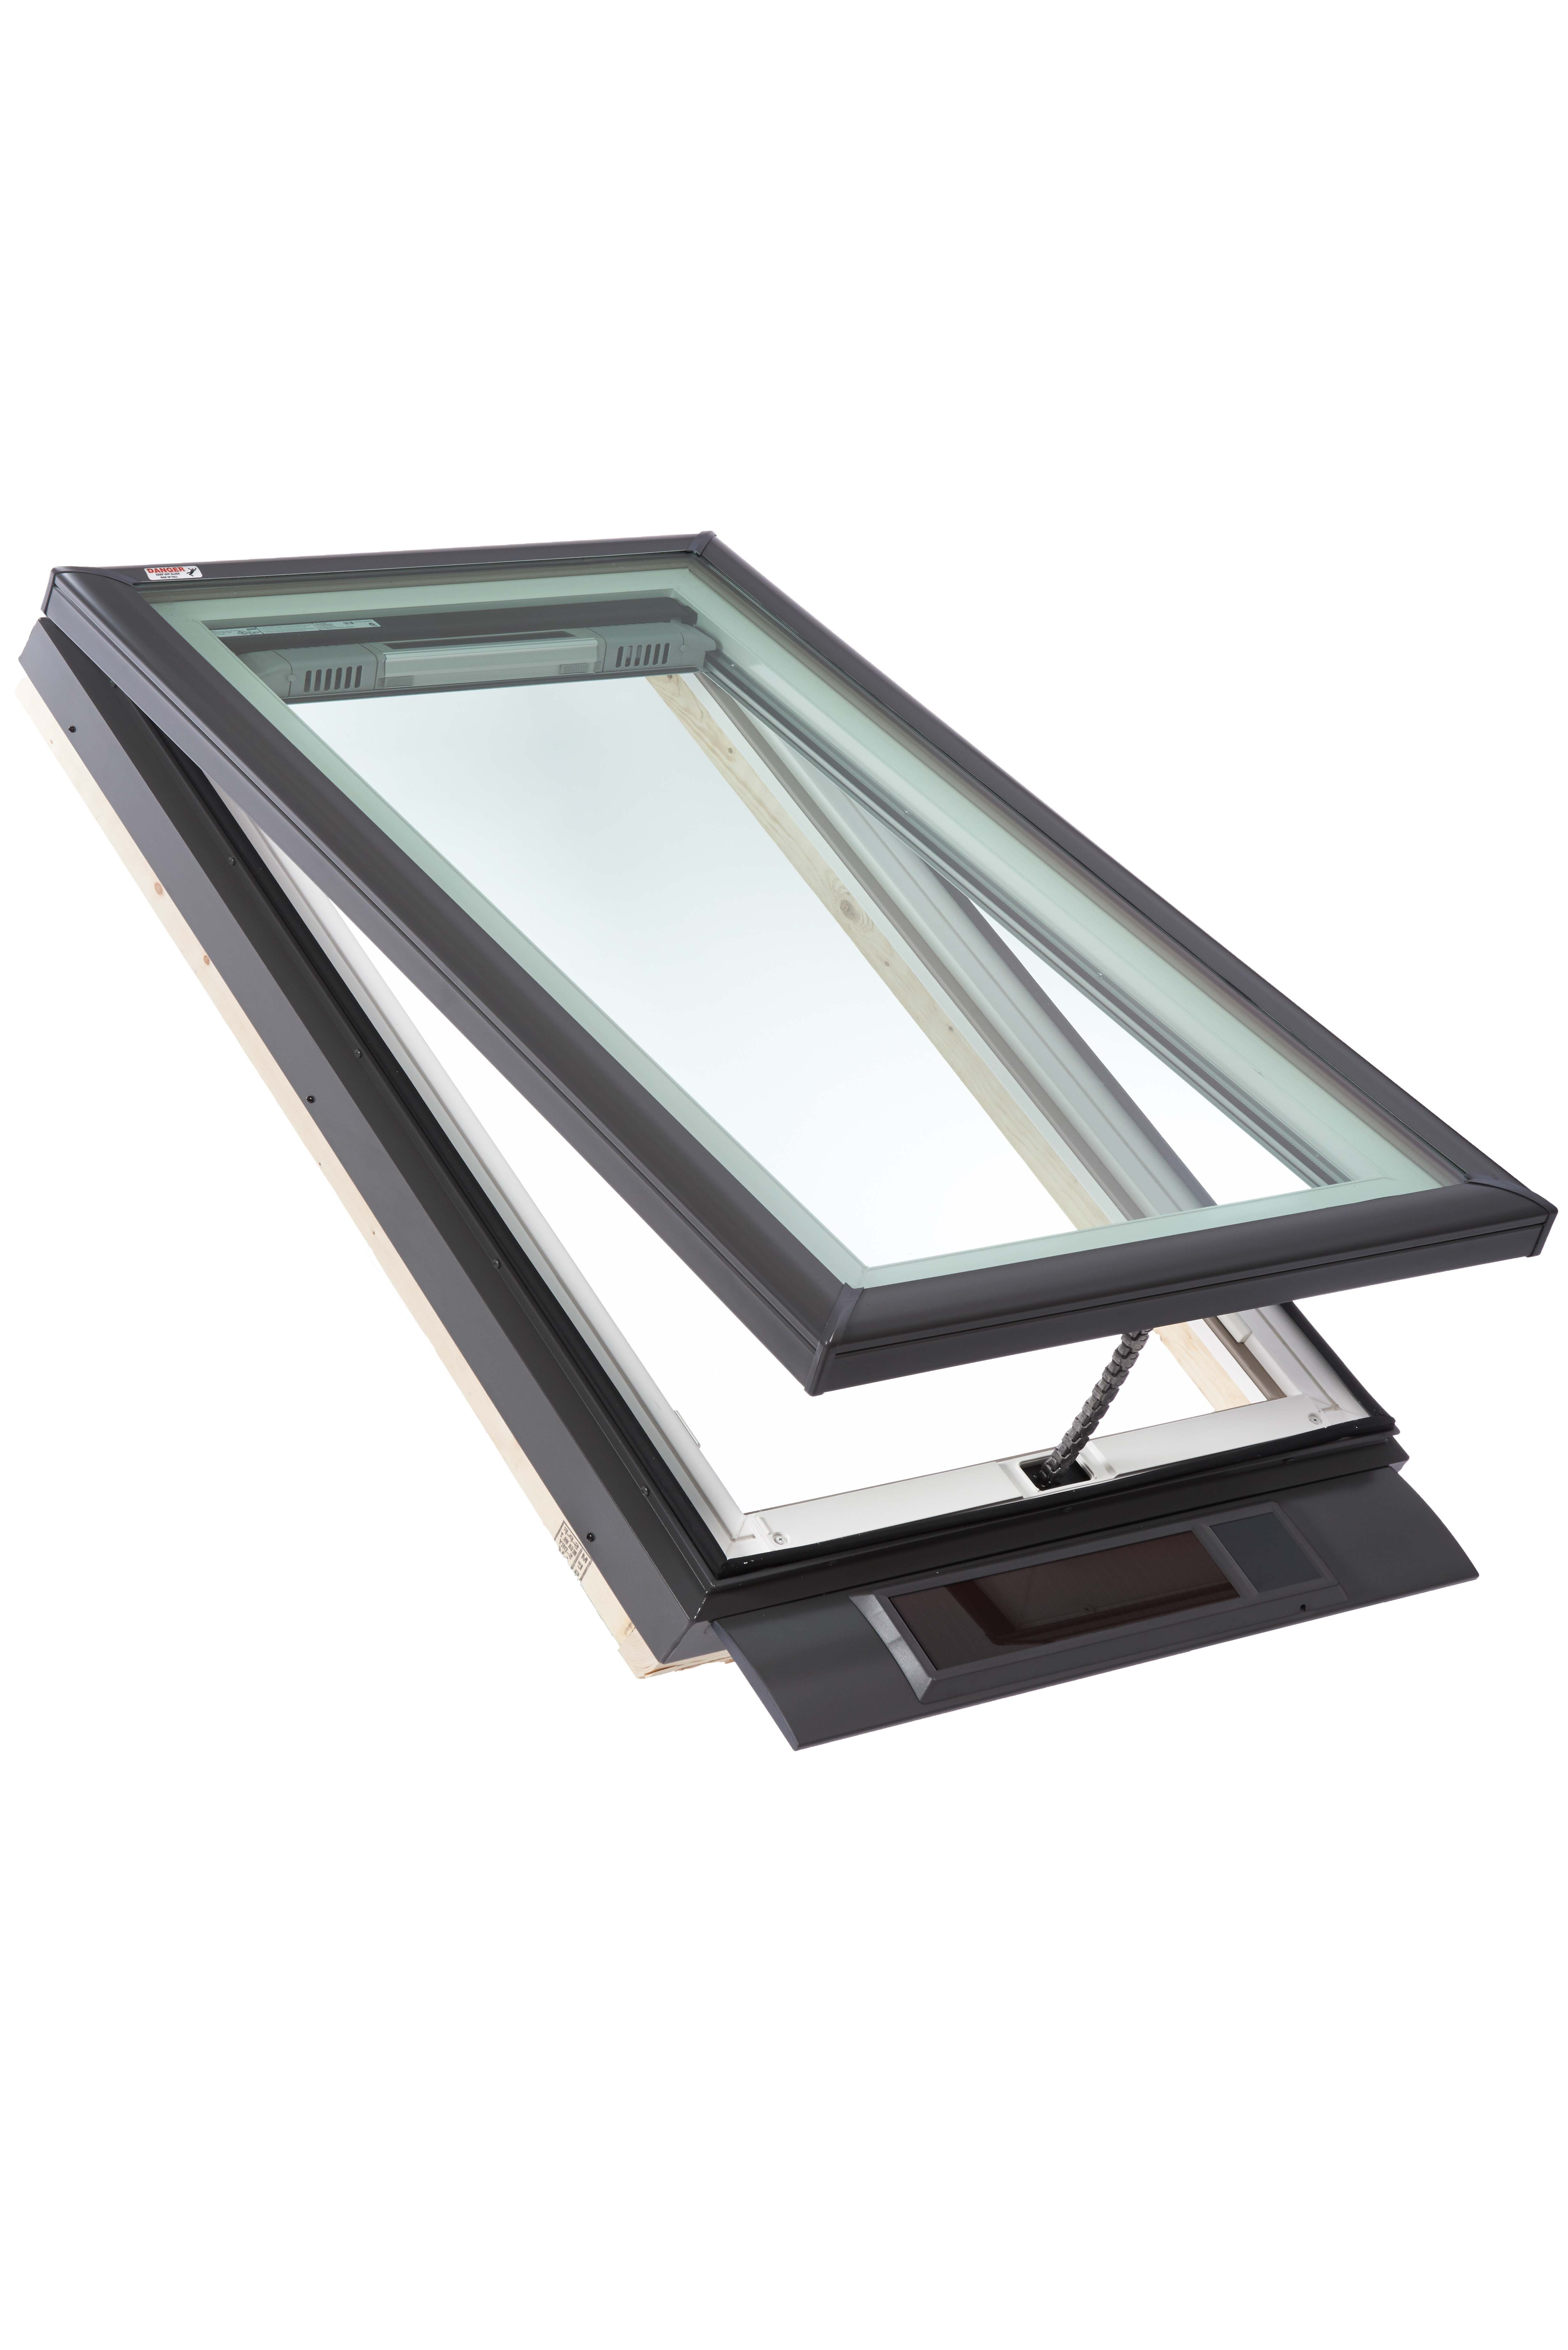 Curb Key Lowes : lowes, Velux, Solar, Venting, Mount, Skylight, 46.5-in, 22.5-in, Lowe's, Canada